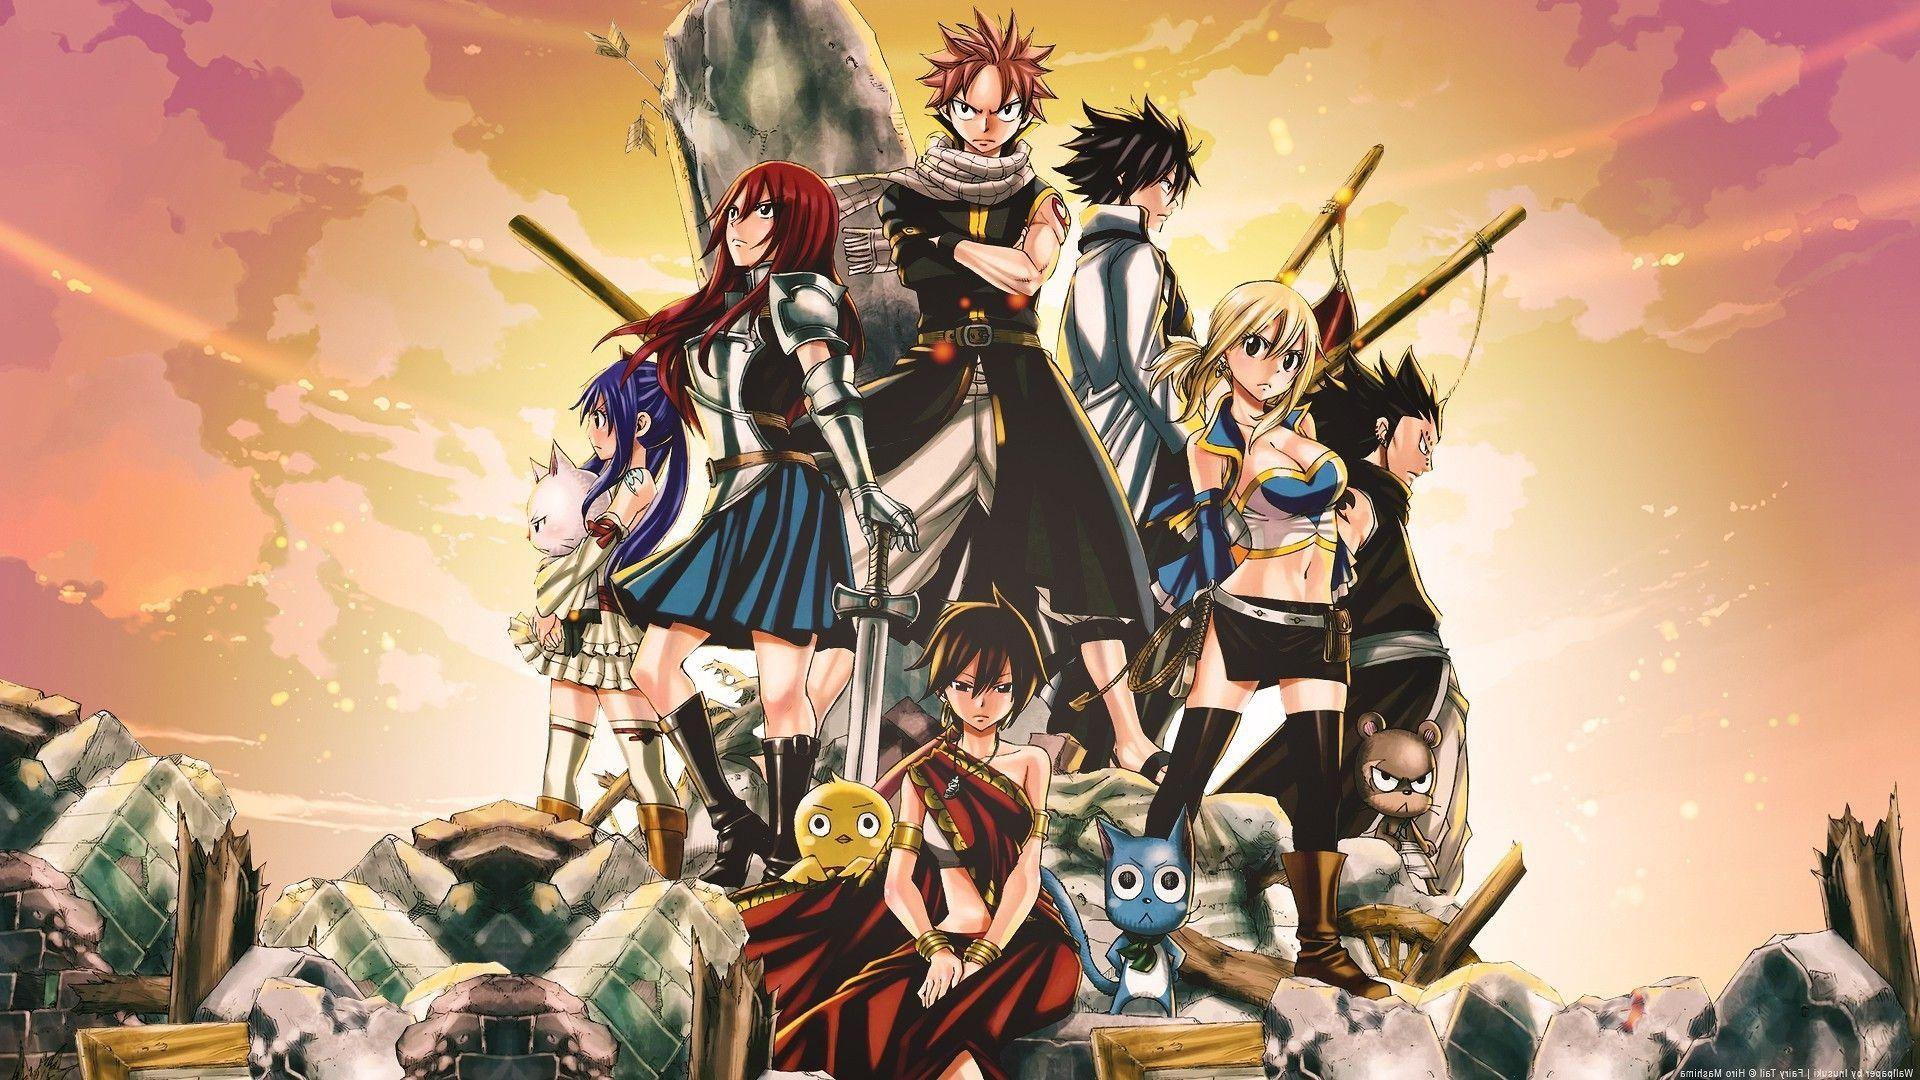 Fairy Tail 2016 Wallpapers HD 1920x1080